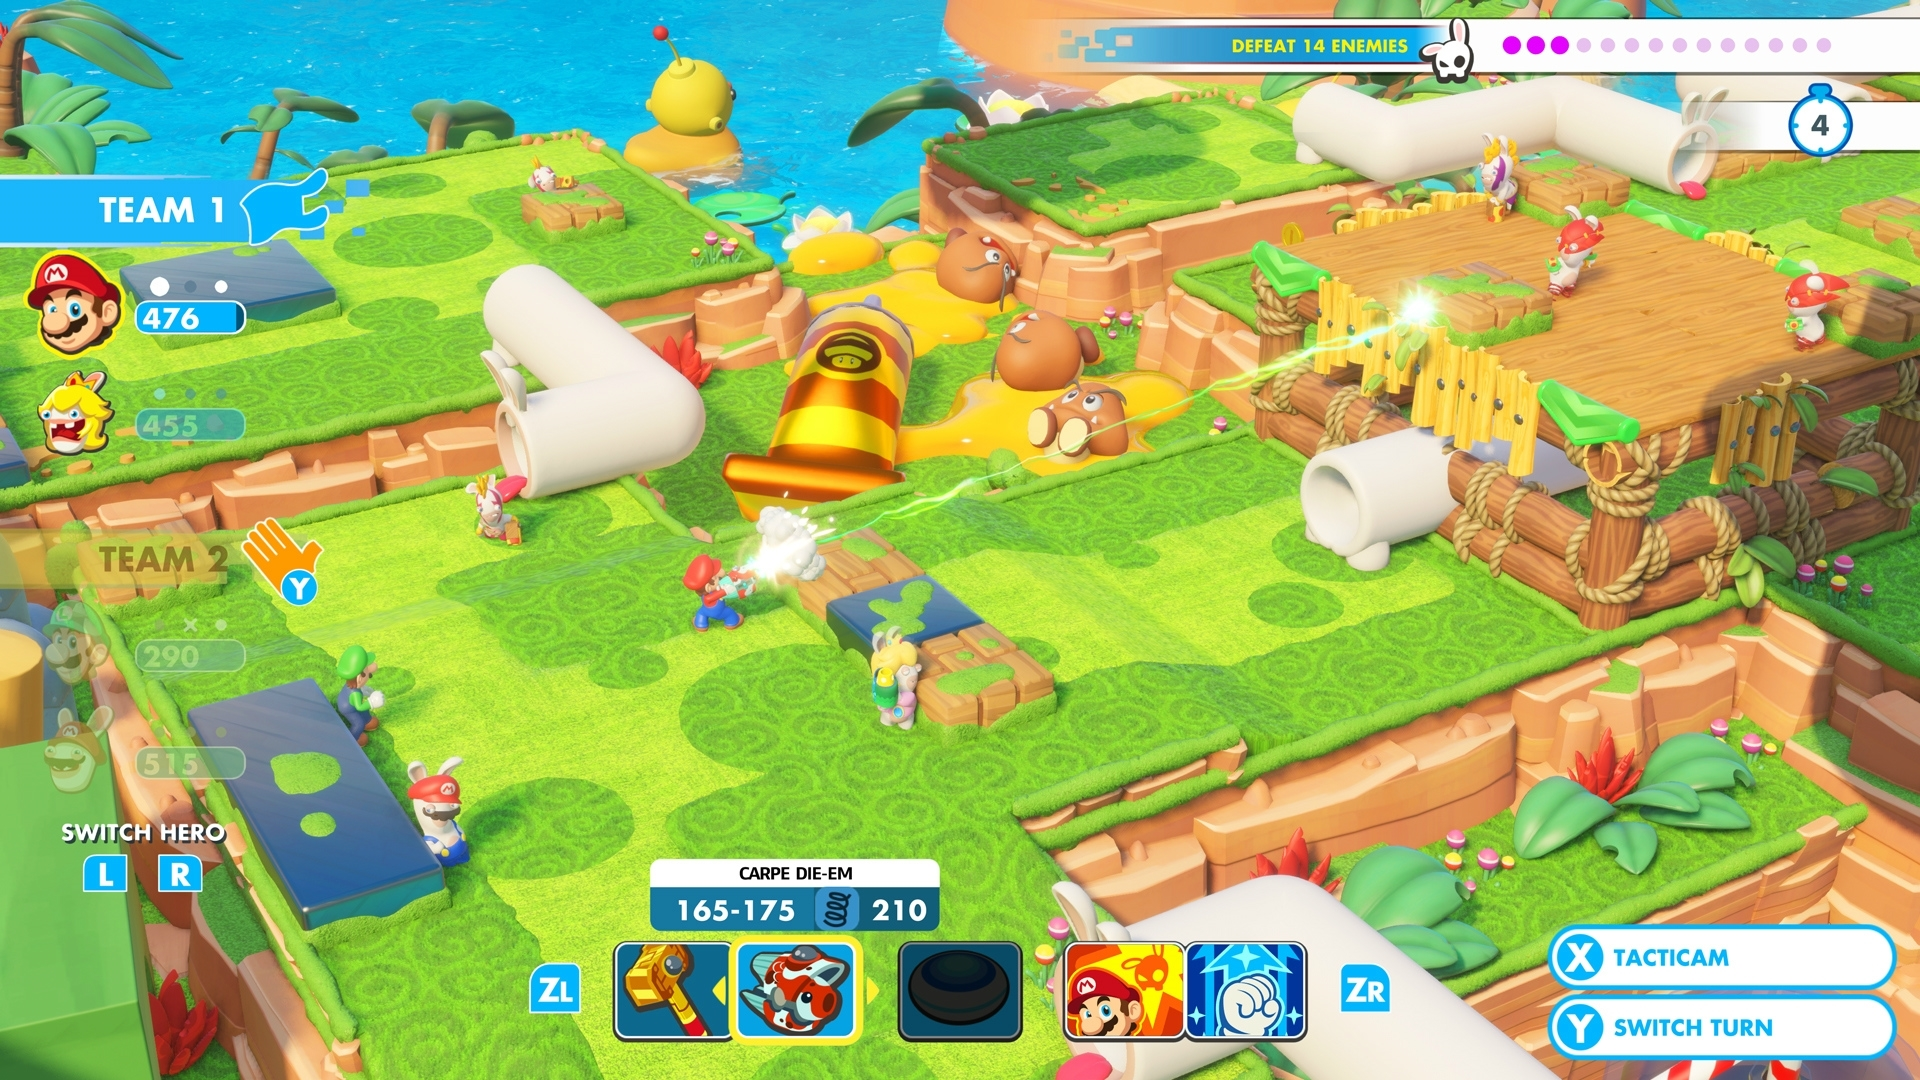 Mario + Rabbids Kingdom Battle – Co-op Challenges and Mischievous Boos | DeviceDaily.com